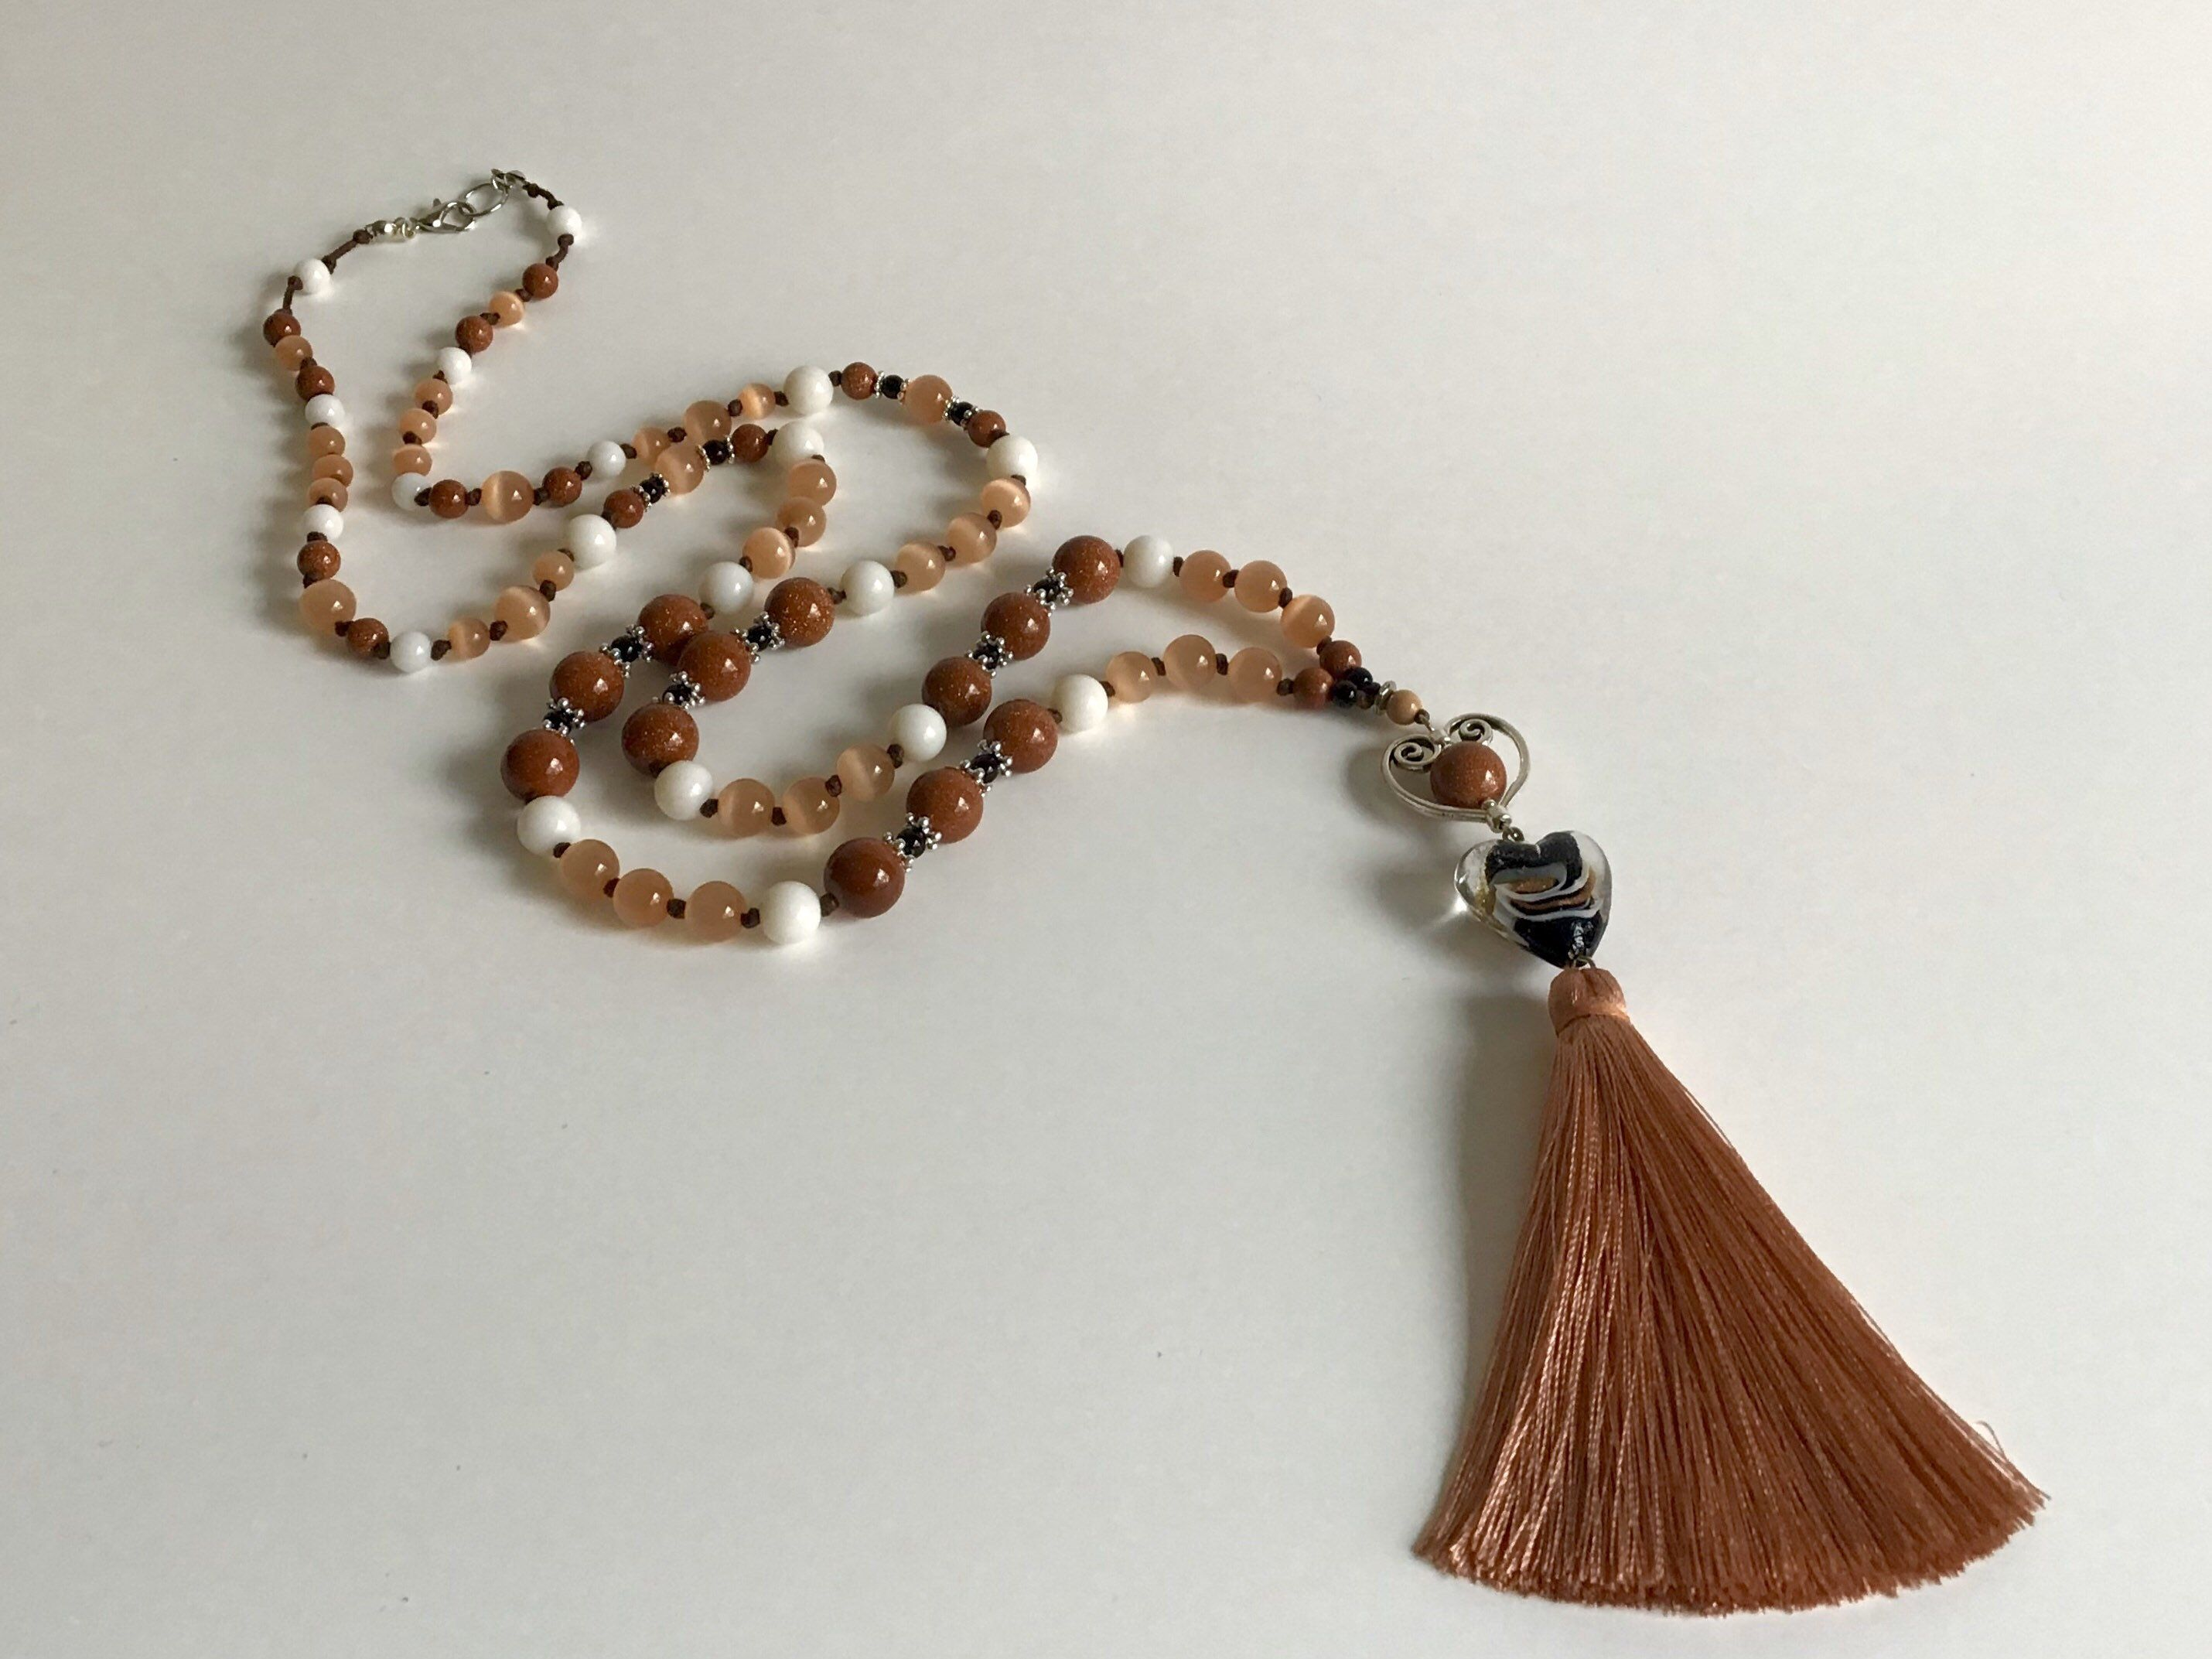 Brown & Beige Necklace with Tassel, Heart Charm Necklace, Bohemian Necklace, Quartz Necklace, Pendant Necklace